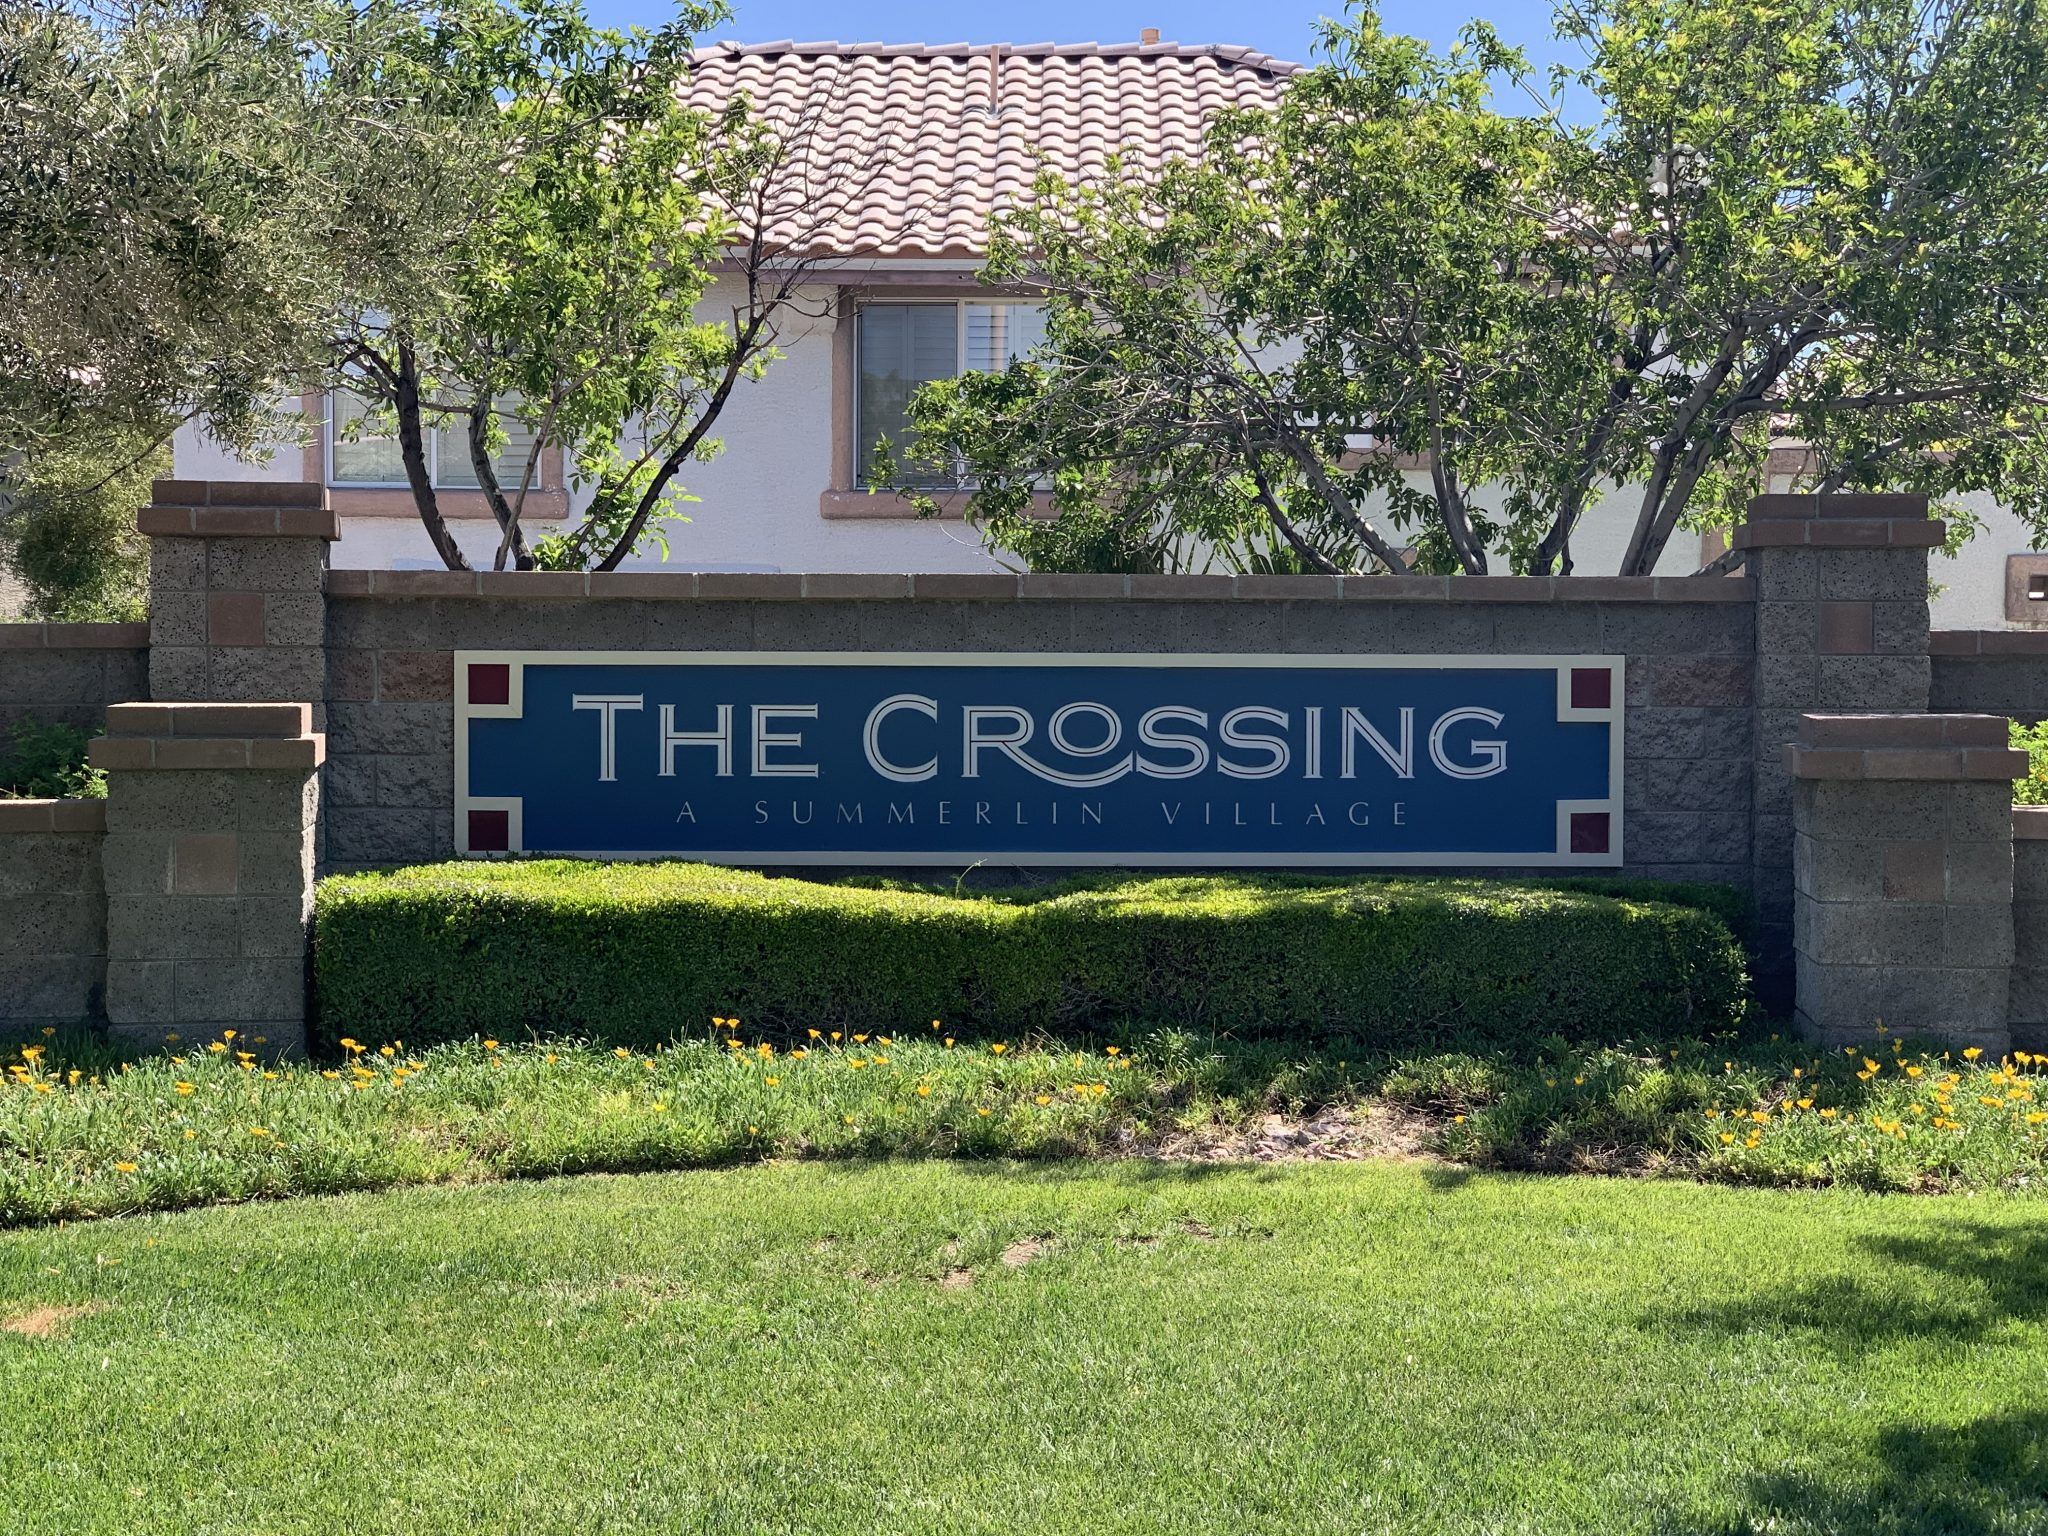 The Crossing Village